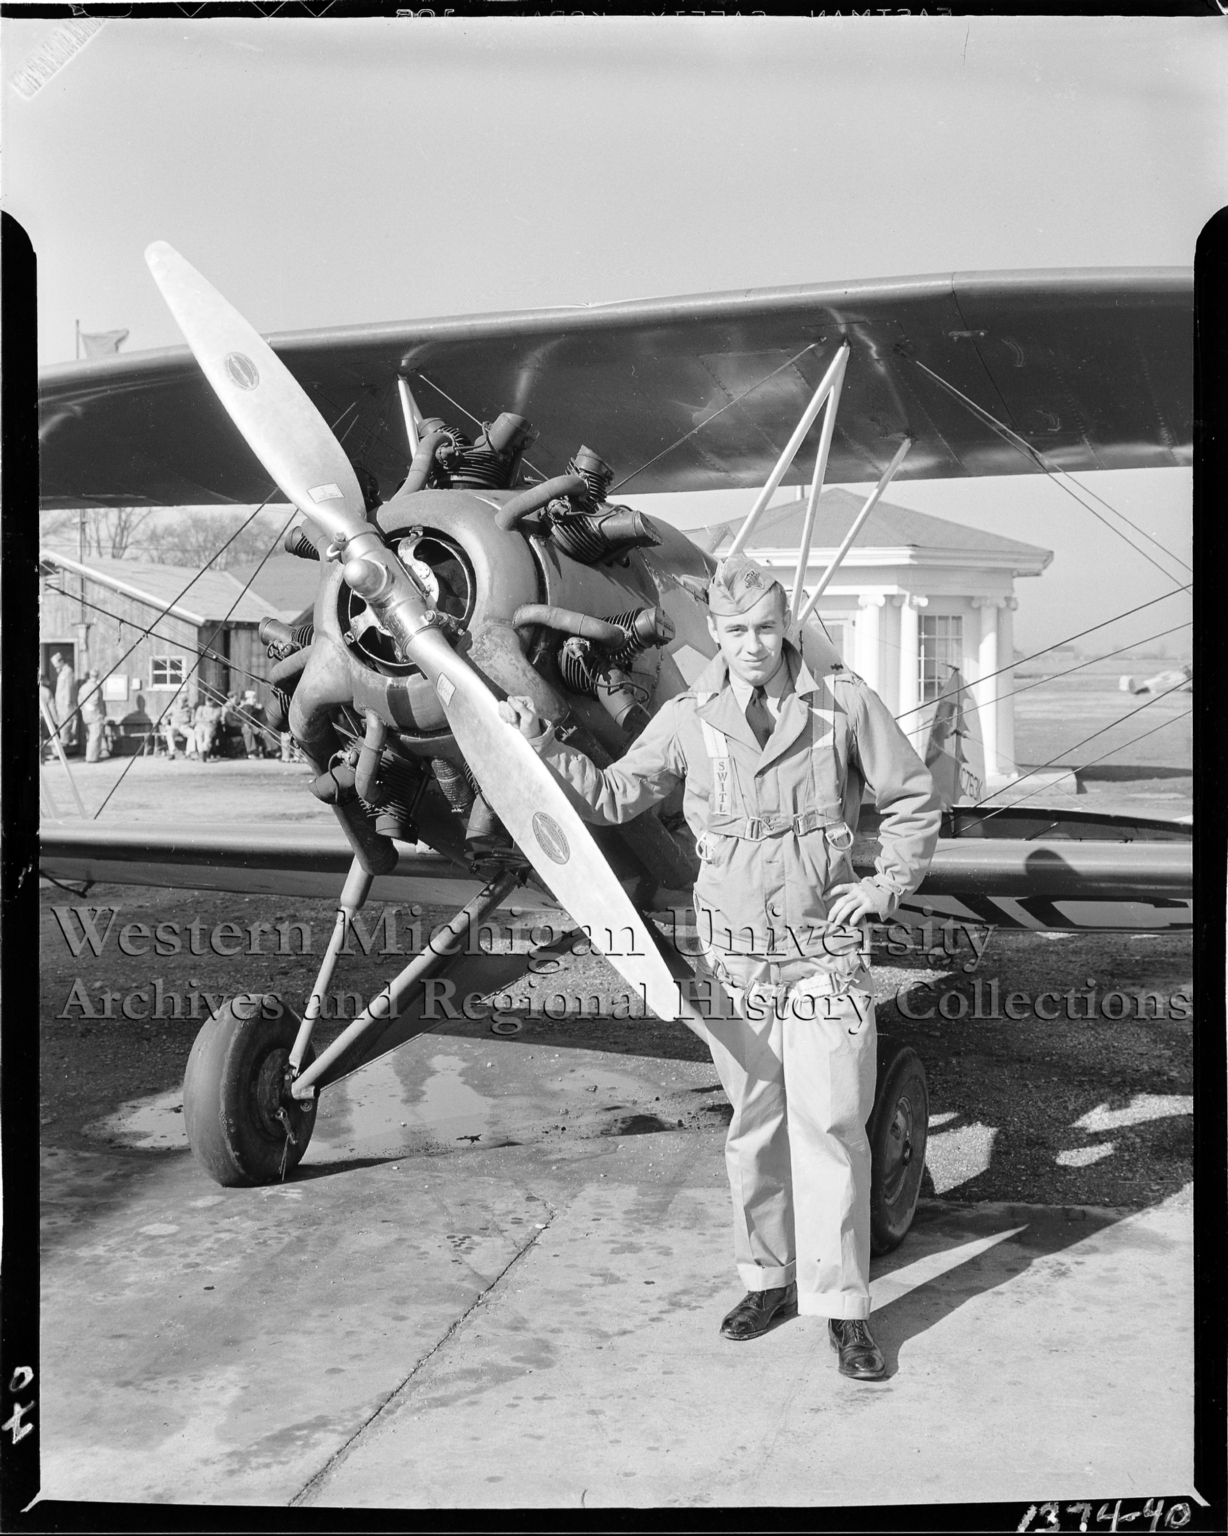 Western Michigan Flying Service, portrait of cadet with plane